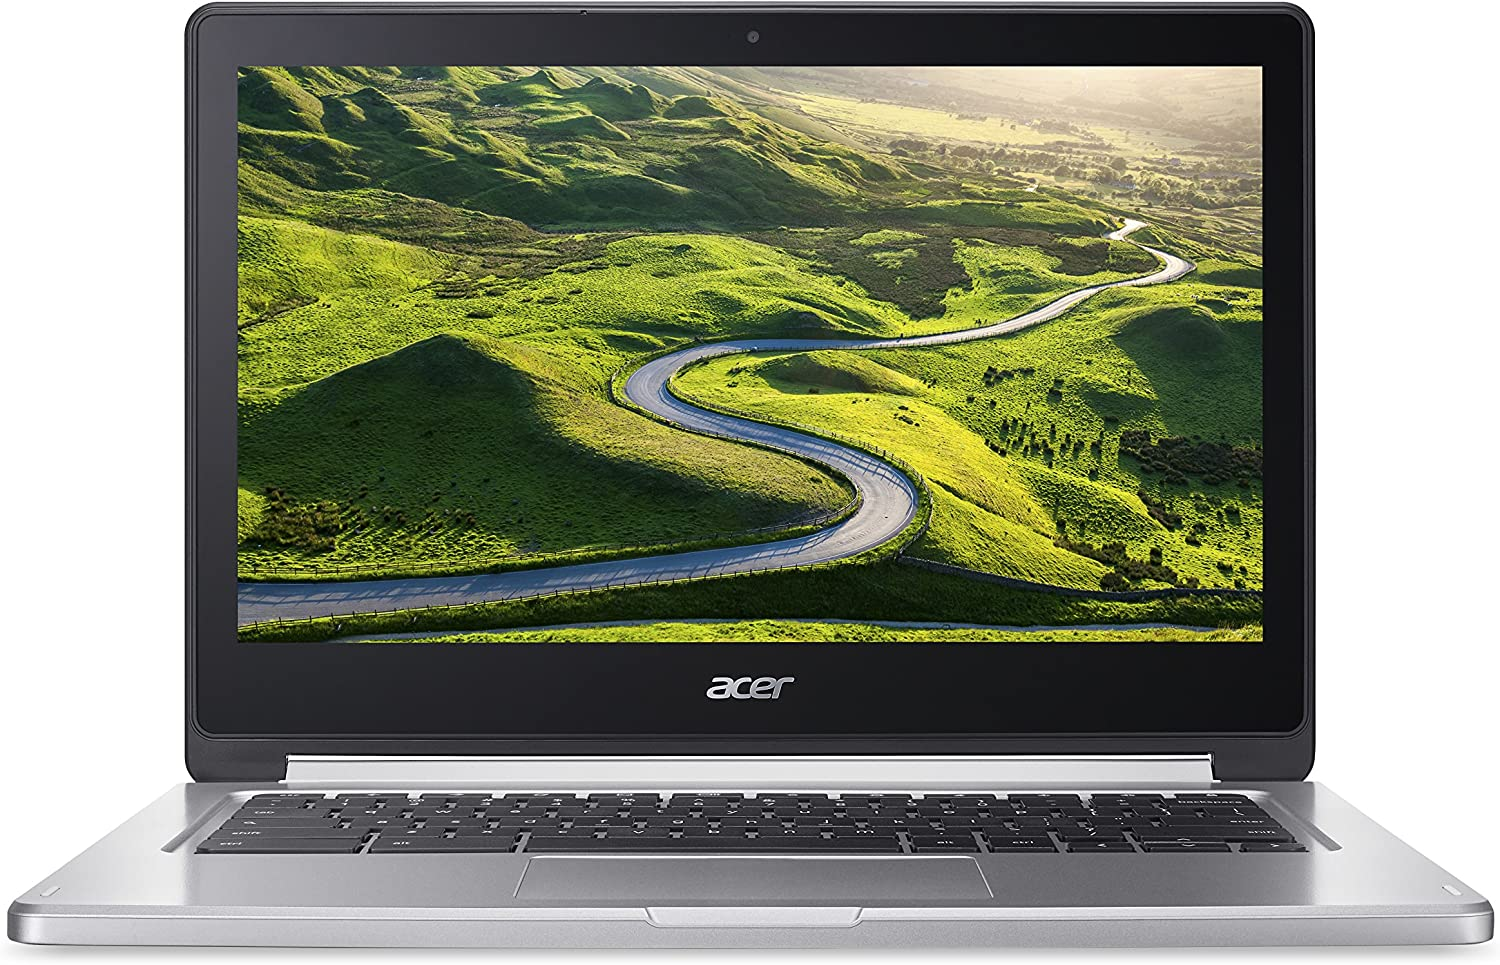 Acer 13.3in MediaTek M8173C 2.10 GHz 4 GB Ram 32 GB Flash Chrome OS|CB5-312T-K6TF (Renewed)